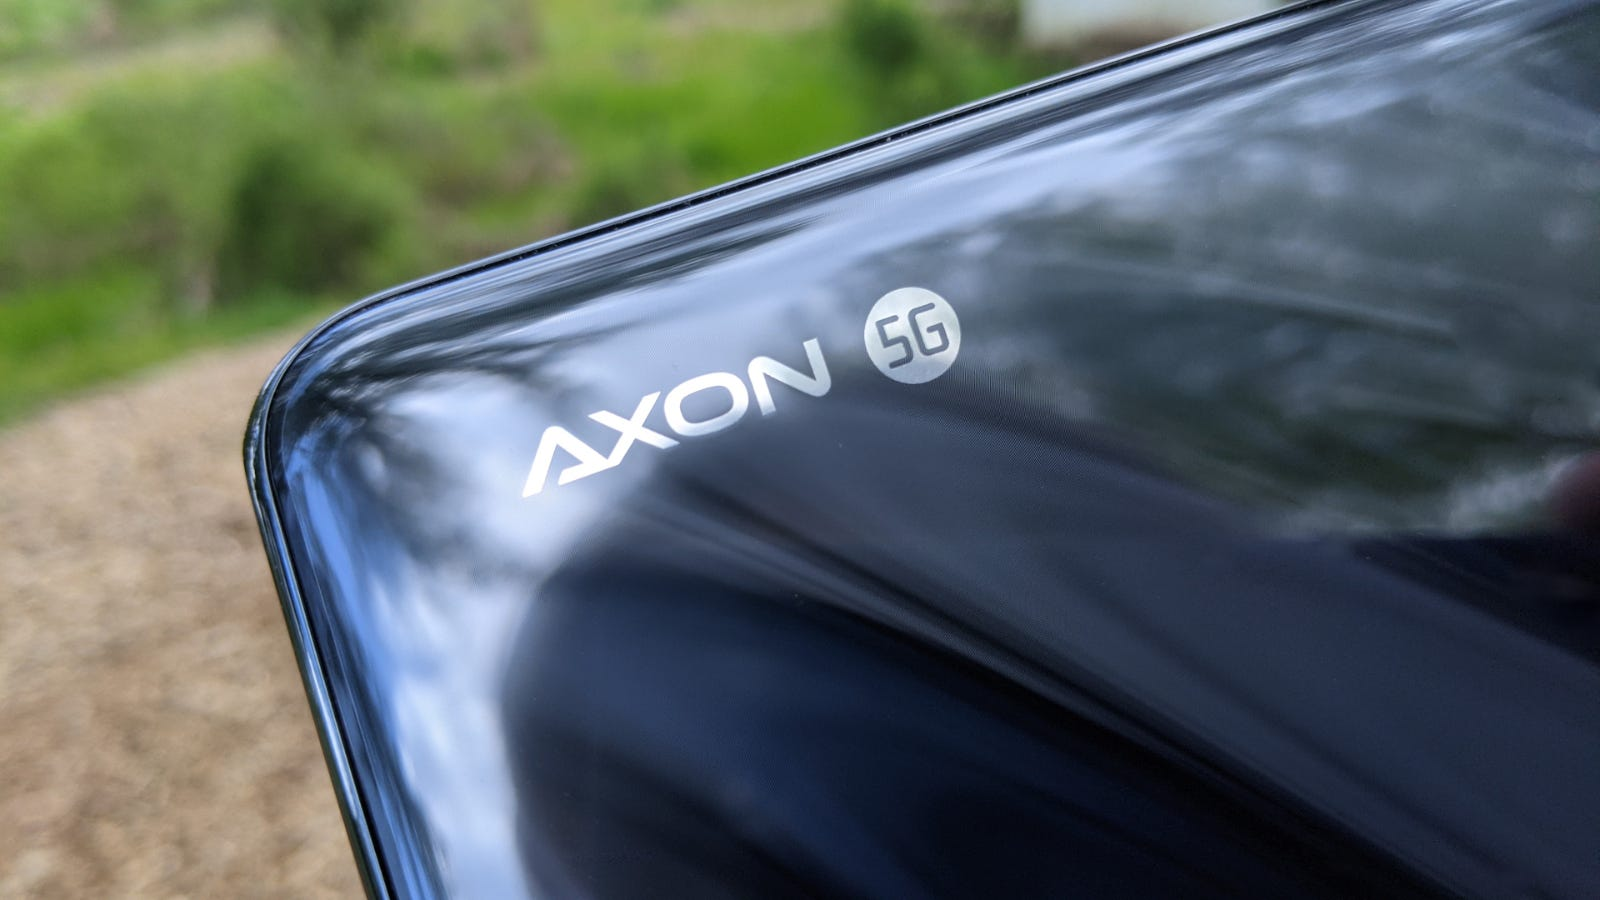 Close-up of the Axon 5G logo on the ZTE Axon 20 5G